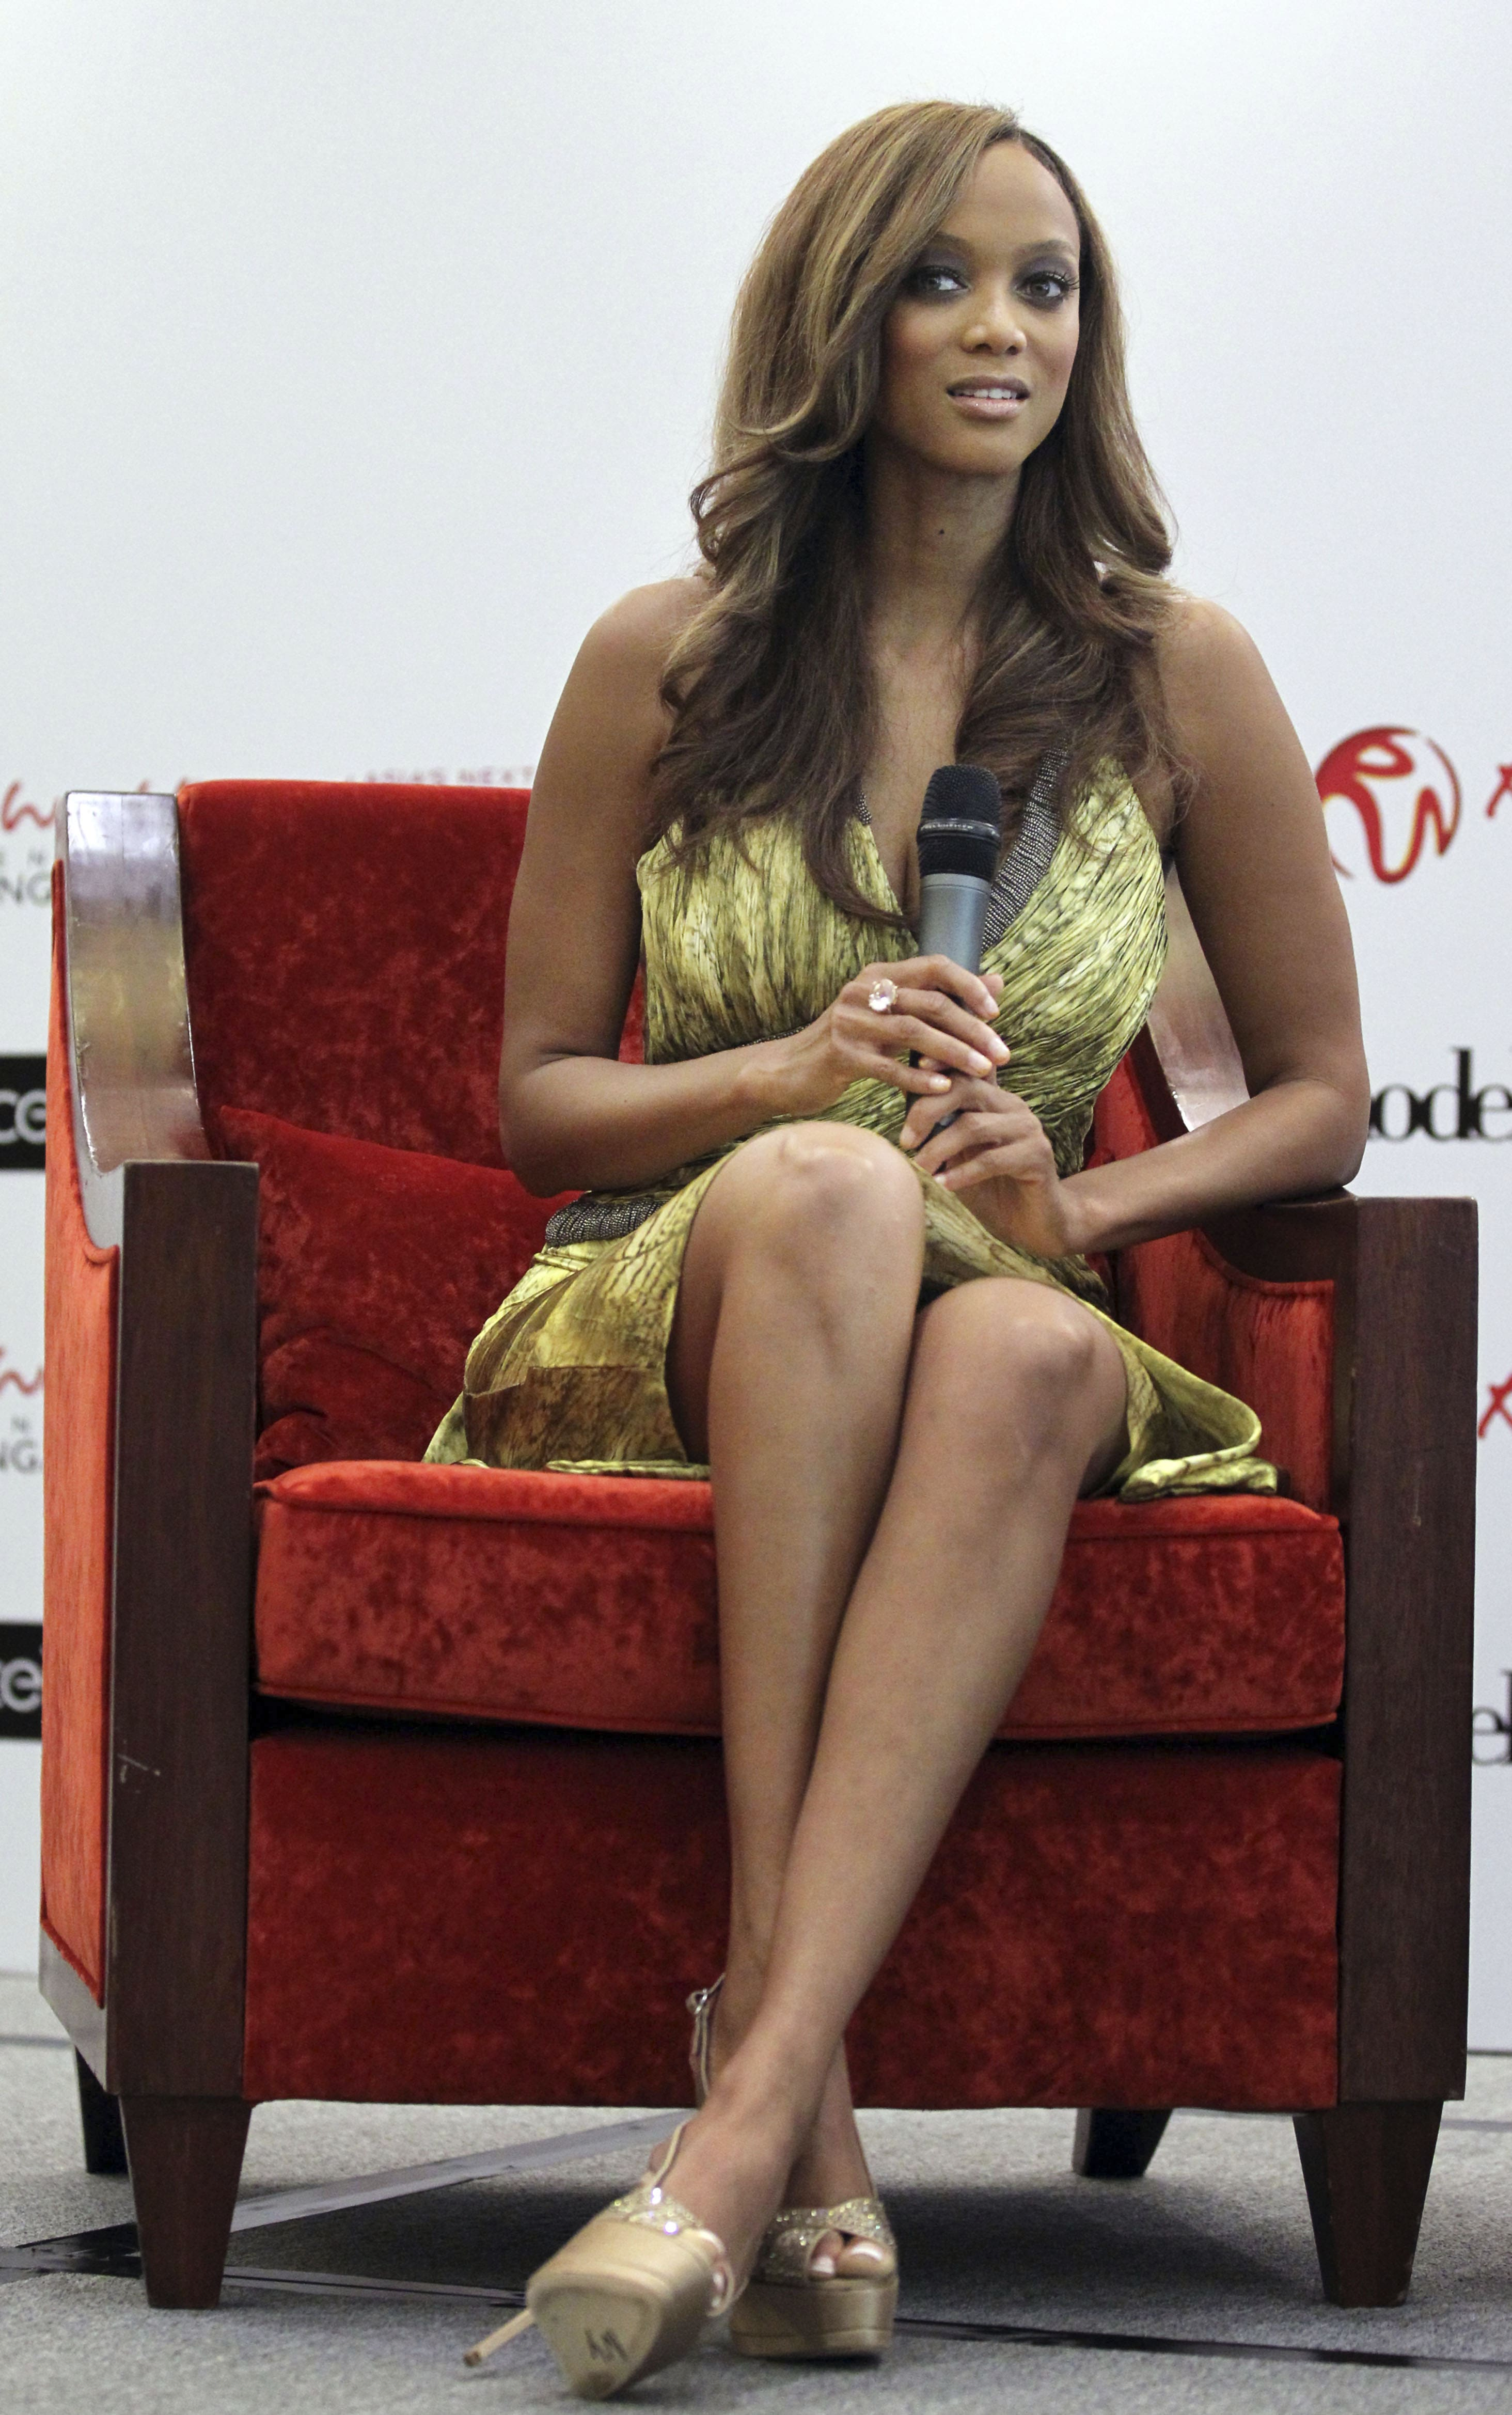 tyra banks hot feet pictures